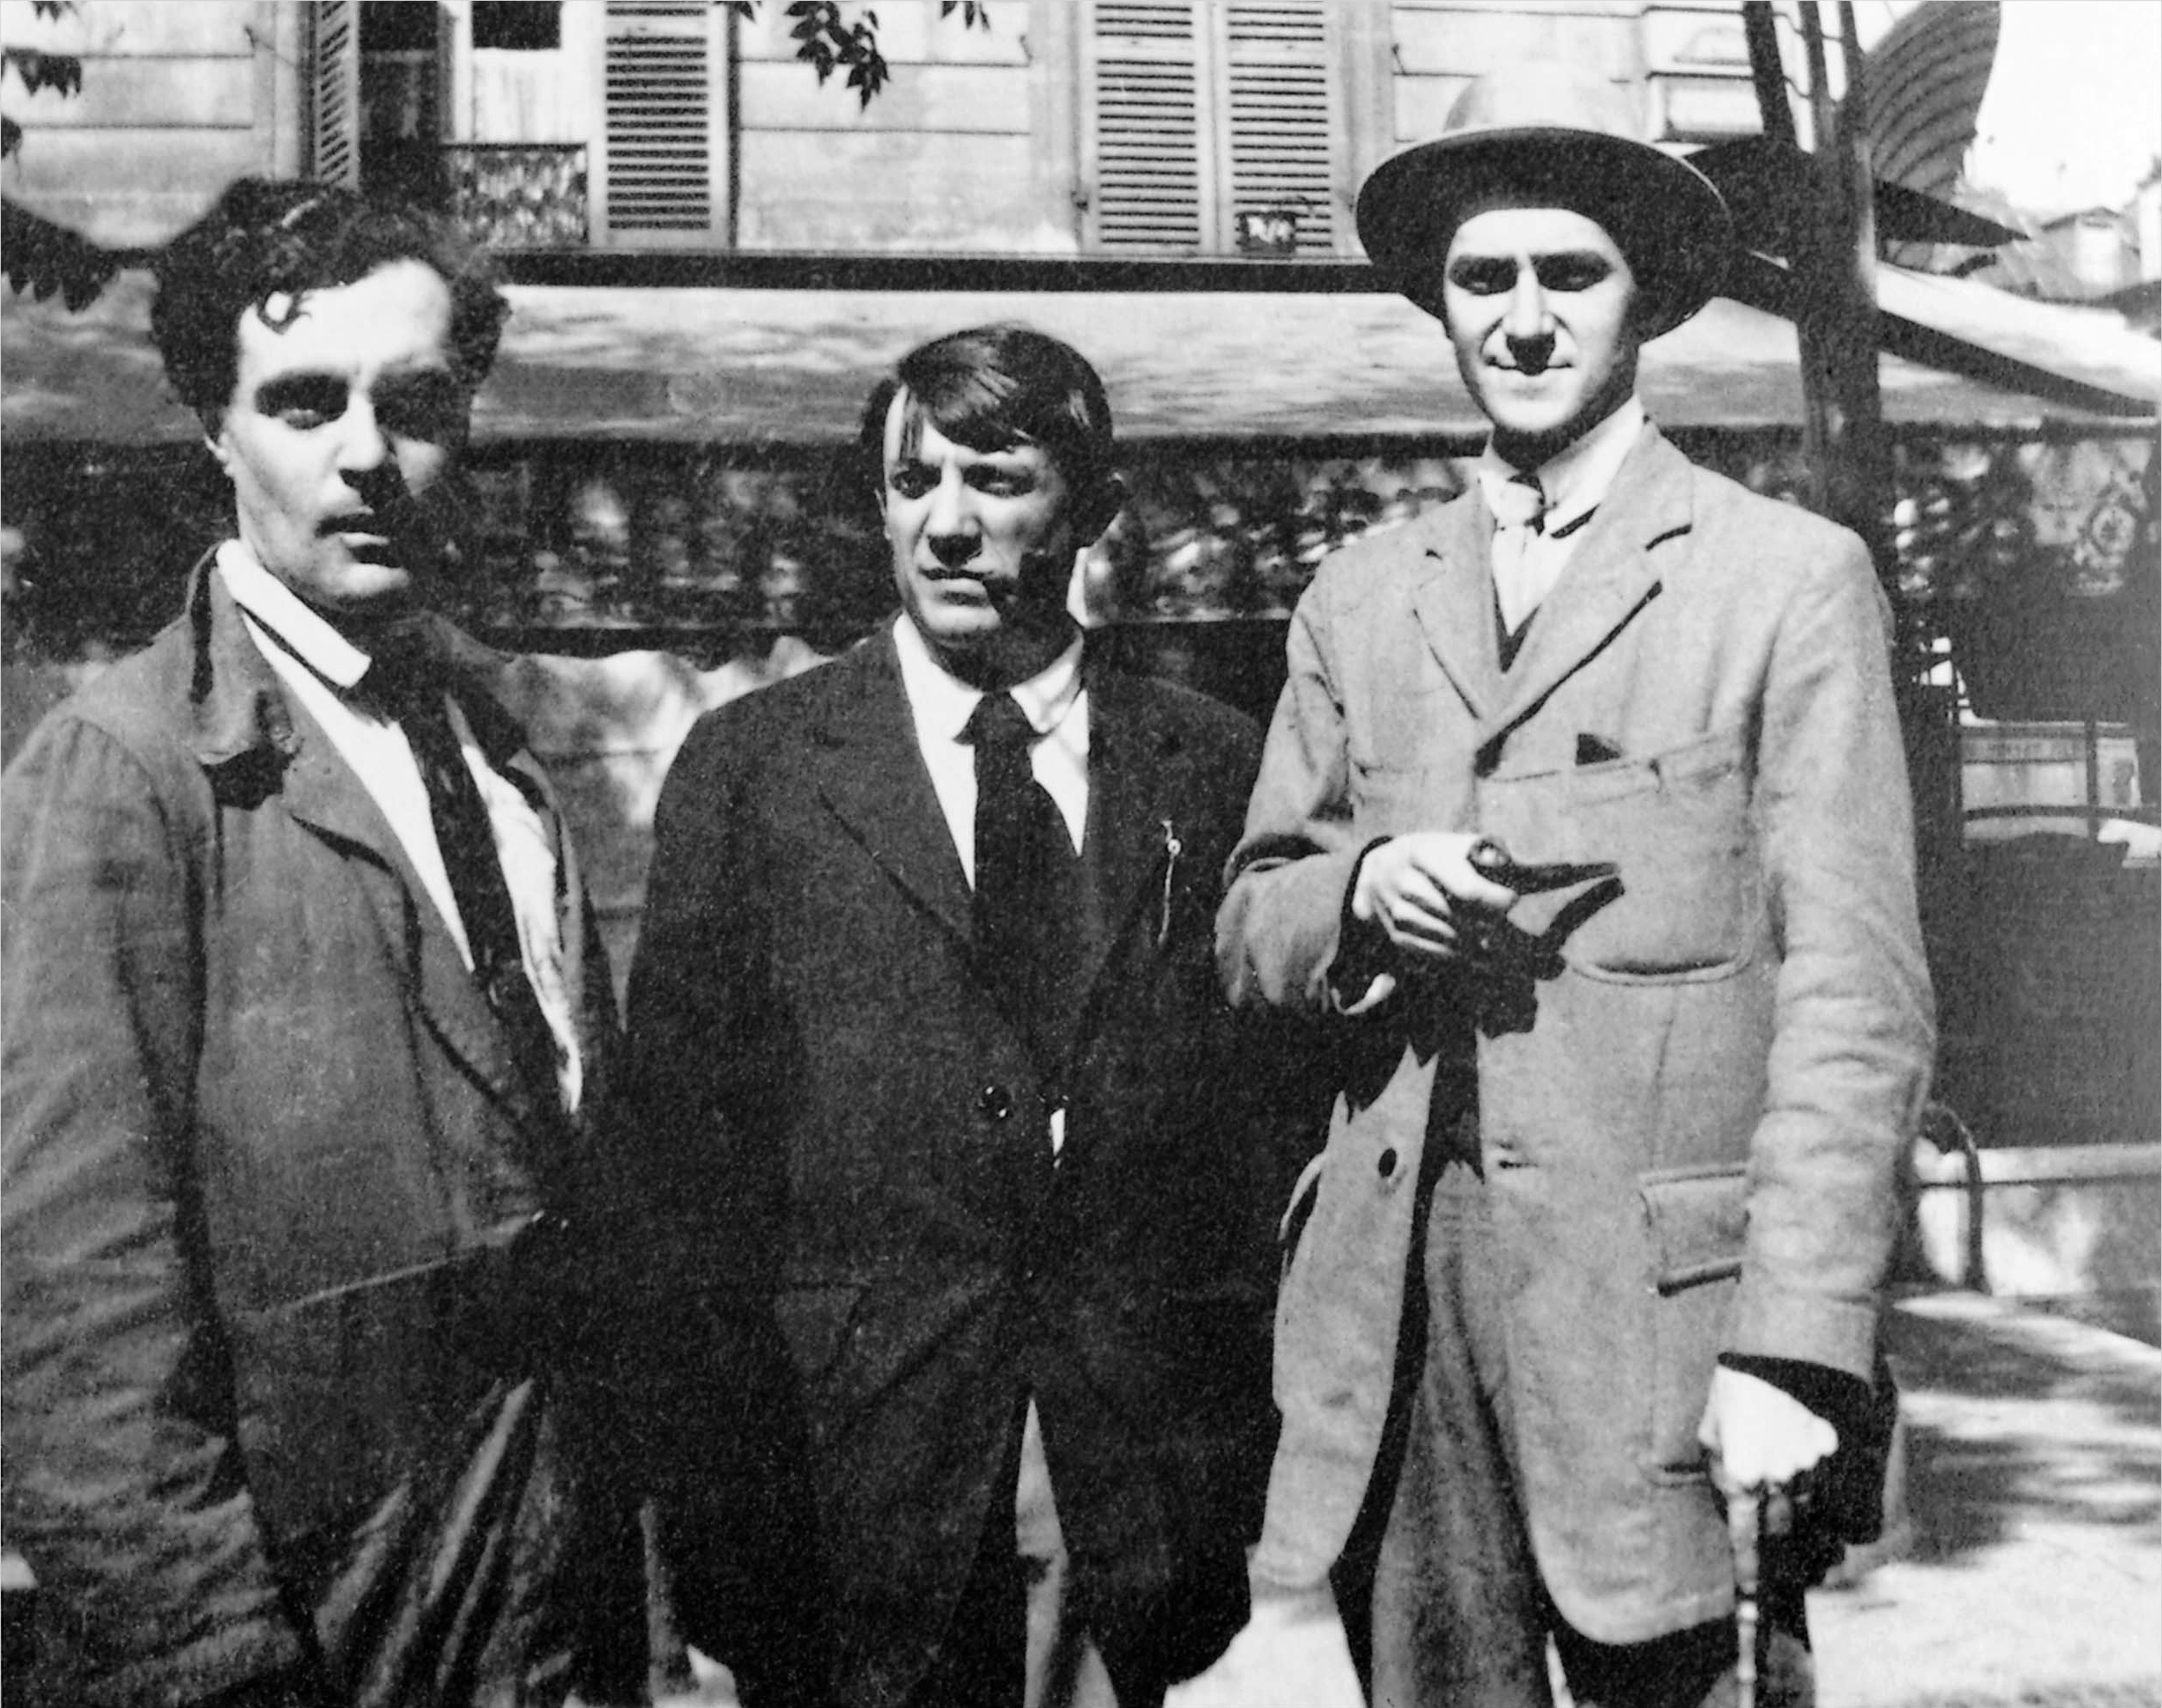 André Salmon (right), [[Amedeo Modigliani]] and [[Pablo Picasso]], 1916, in front of the Café de La Rotonde